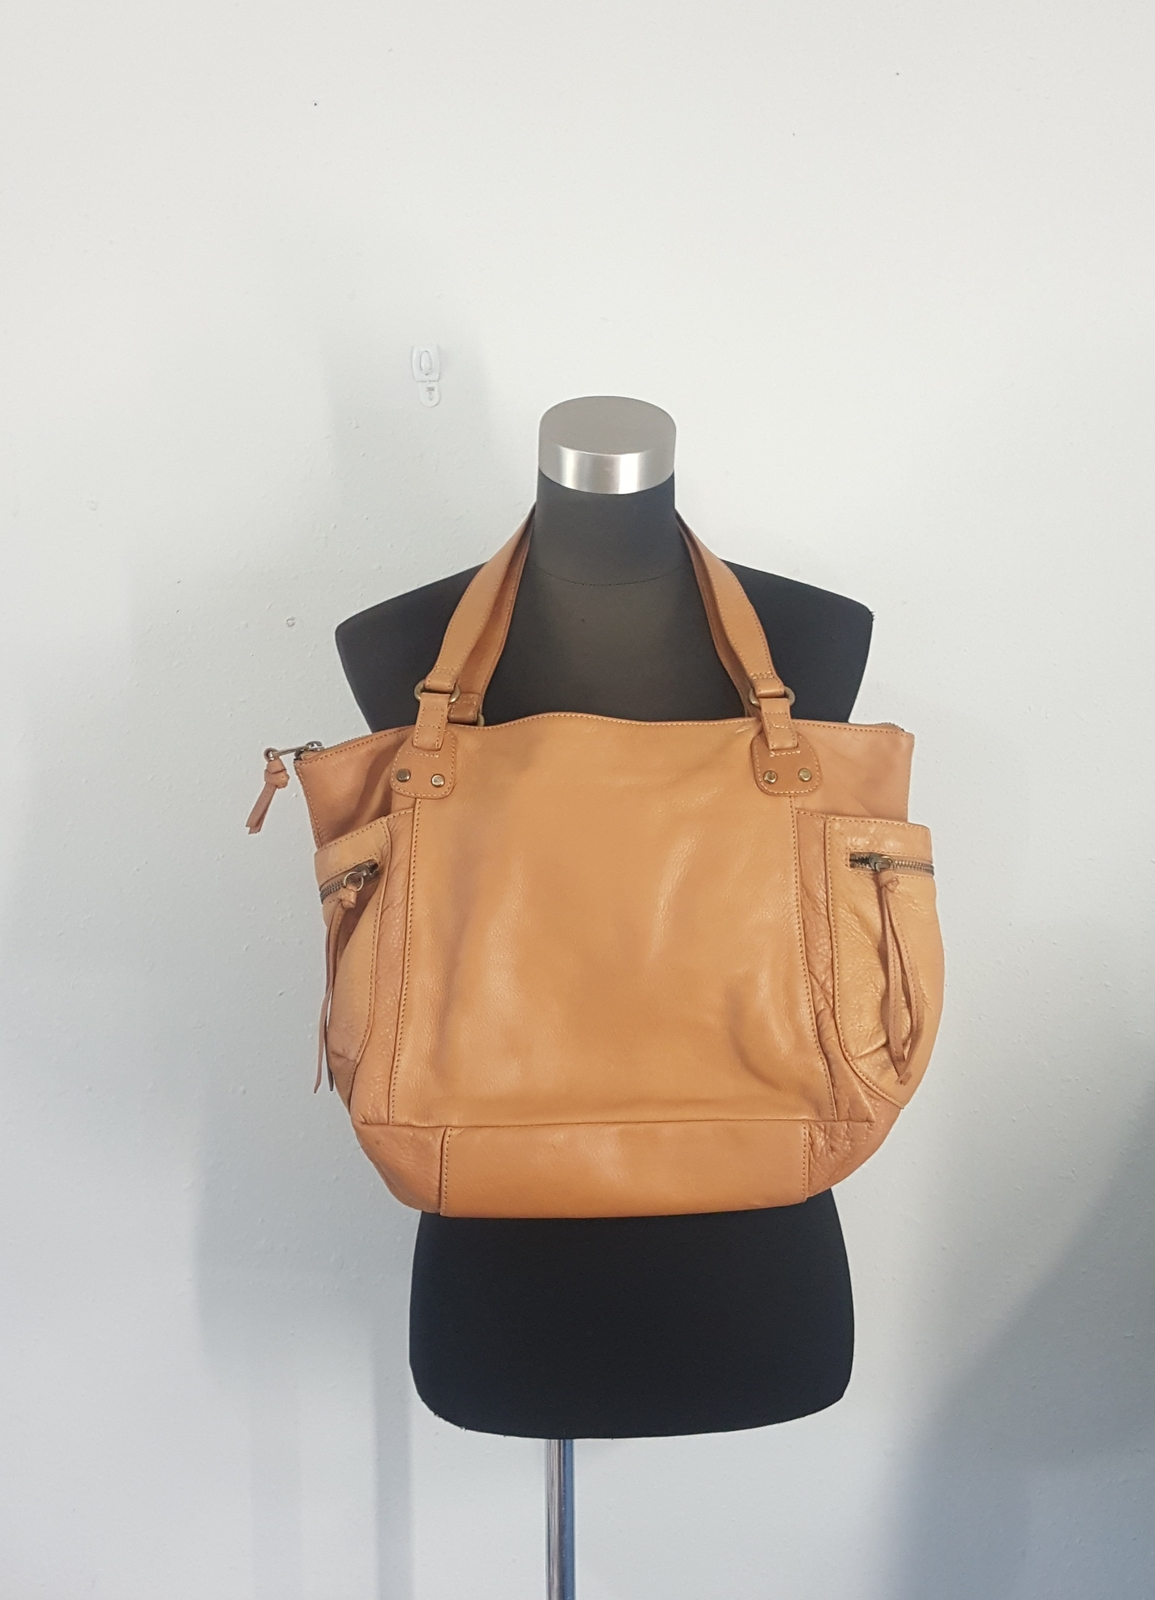 Primary image for Fossil Tan Leather Tote Purse Shoulder Bag 75082